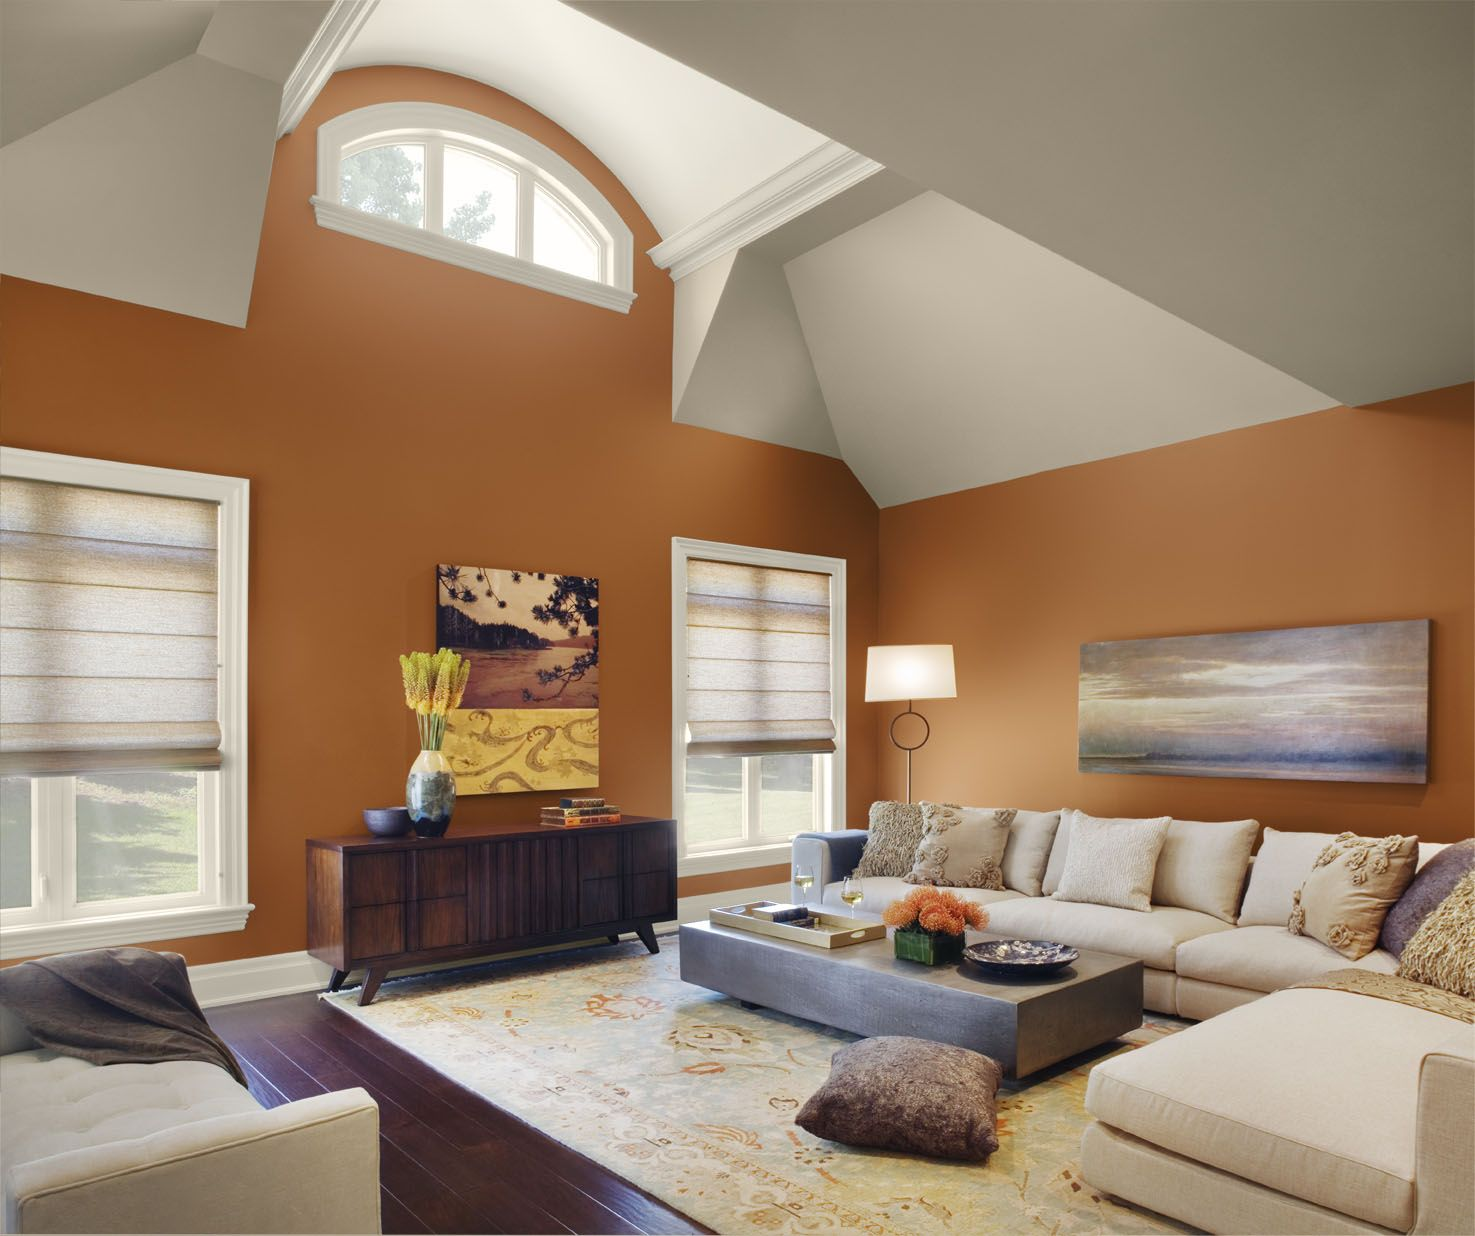 Benjamin Moore Colors For Your Living Room Decor: Benjamin Moore Masada For Accent Walls